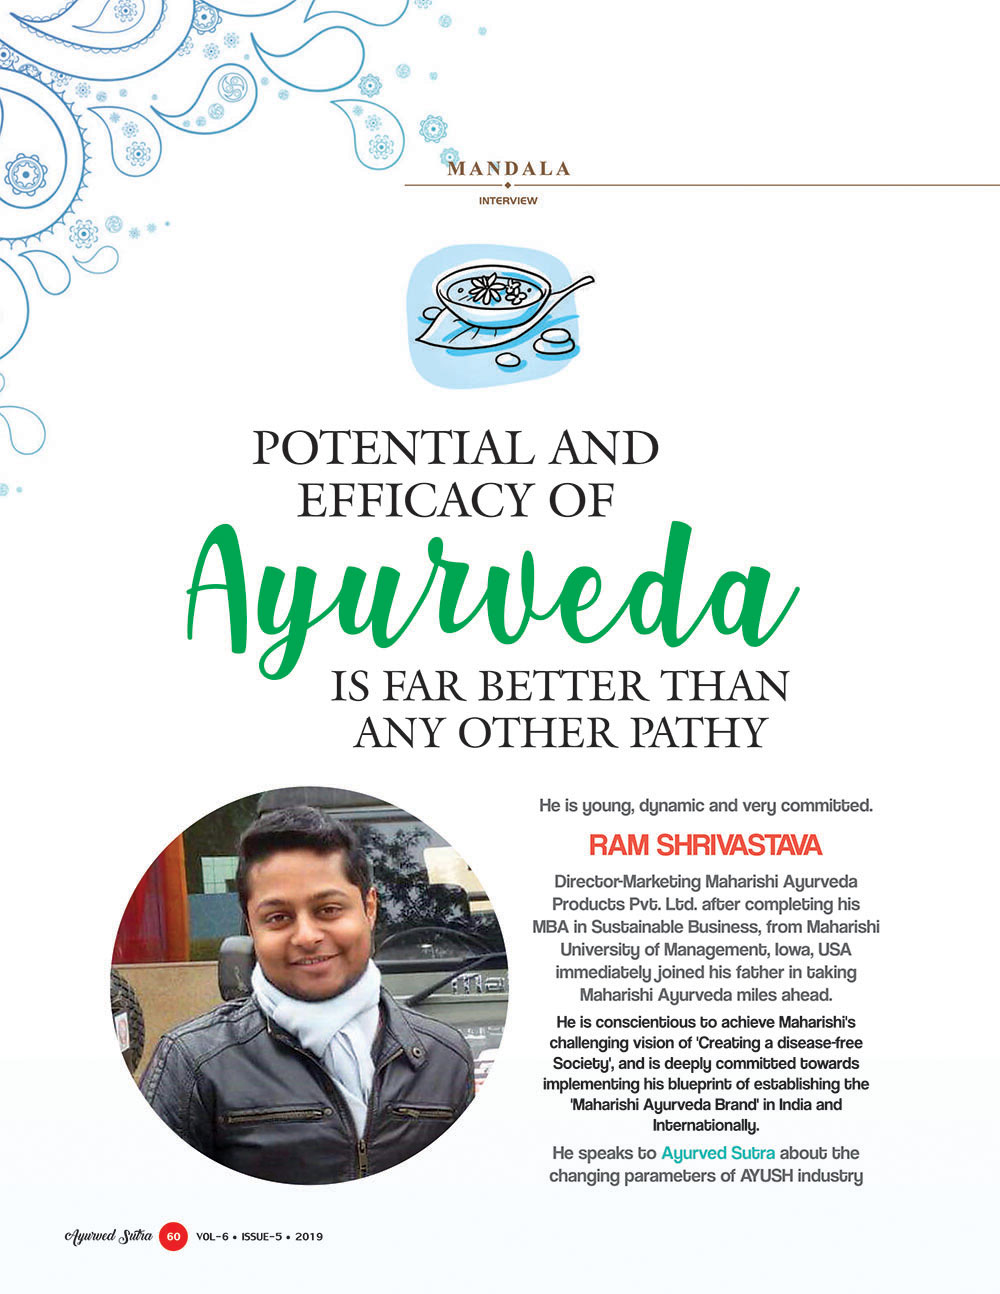 Ayurvedsutra Vol 06 issue 05 62 - Potential and Efficacy of Ayurveda is far better than any other Pathy